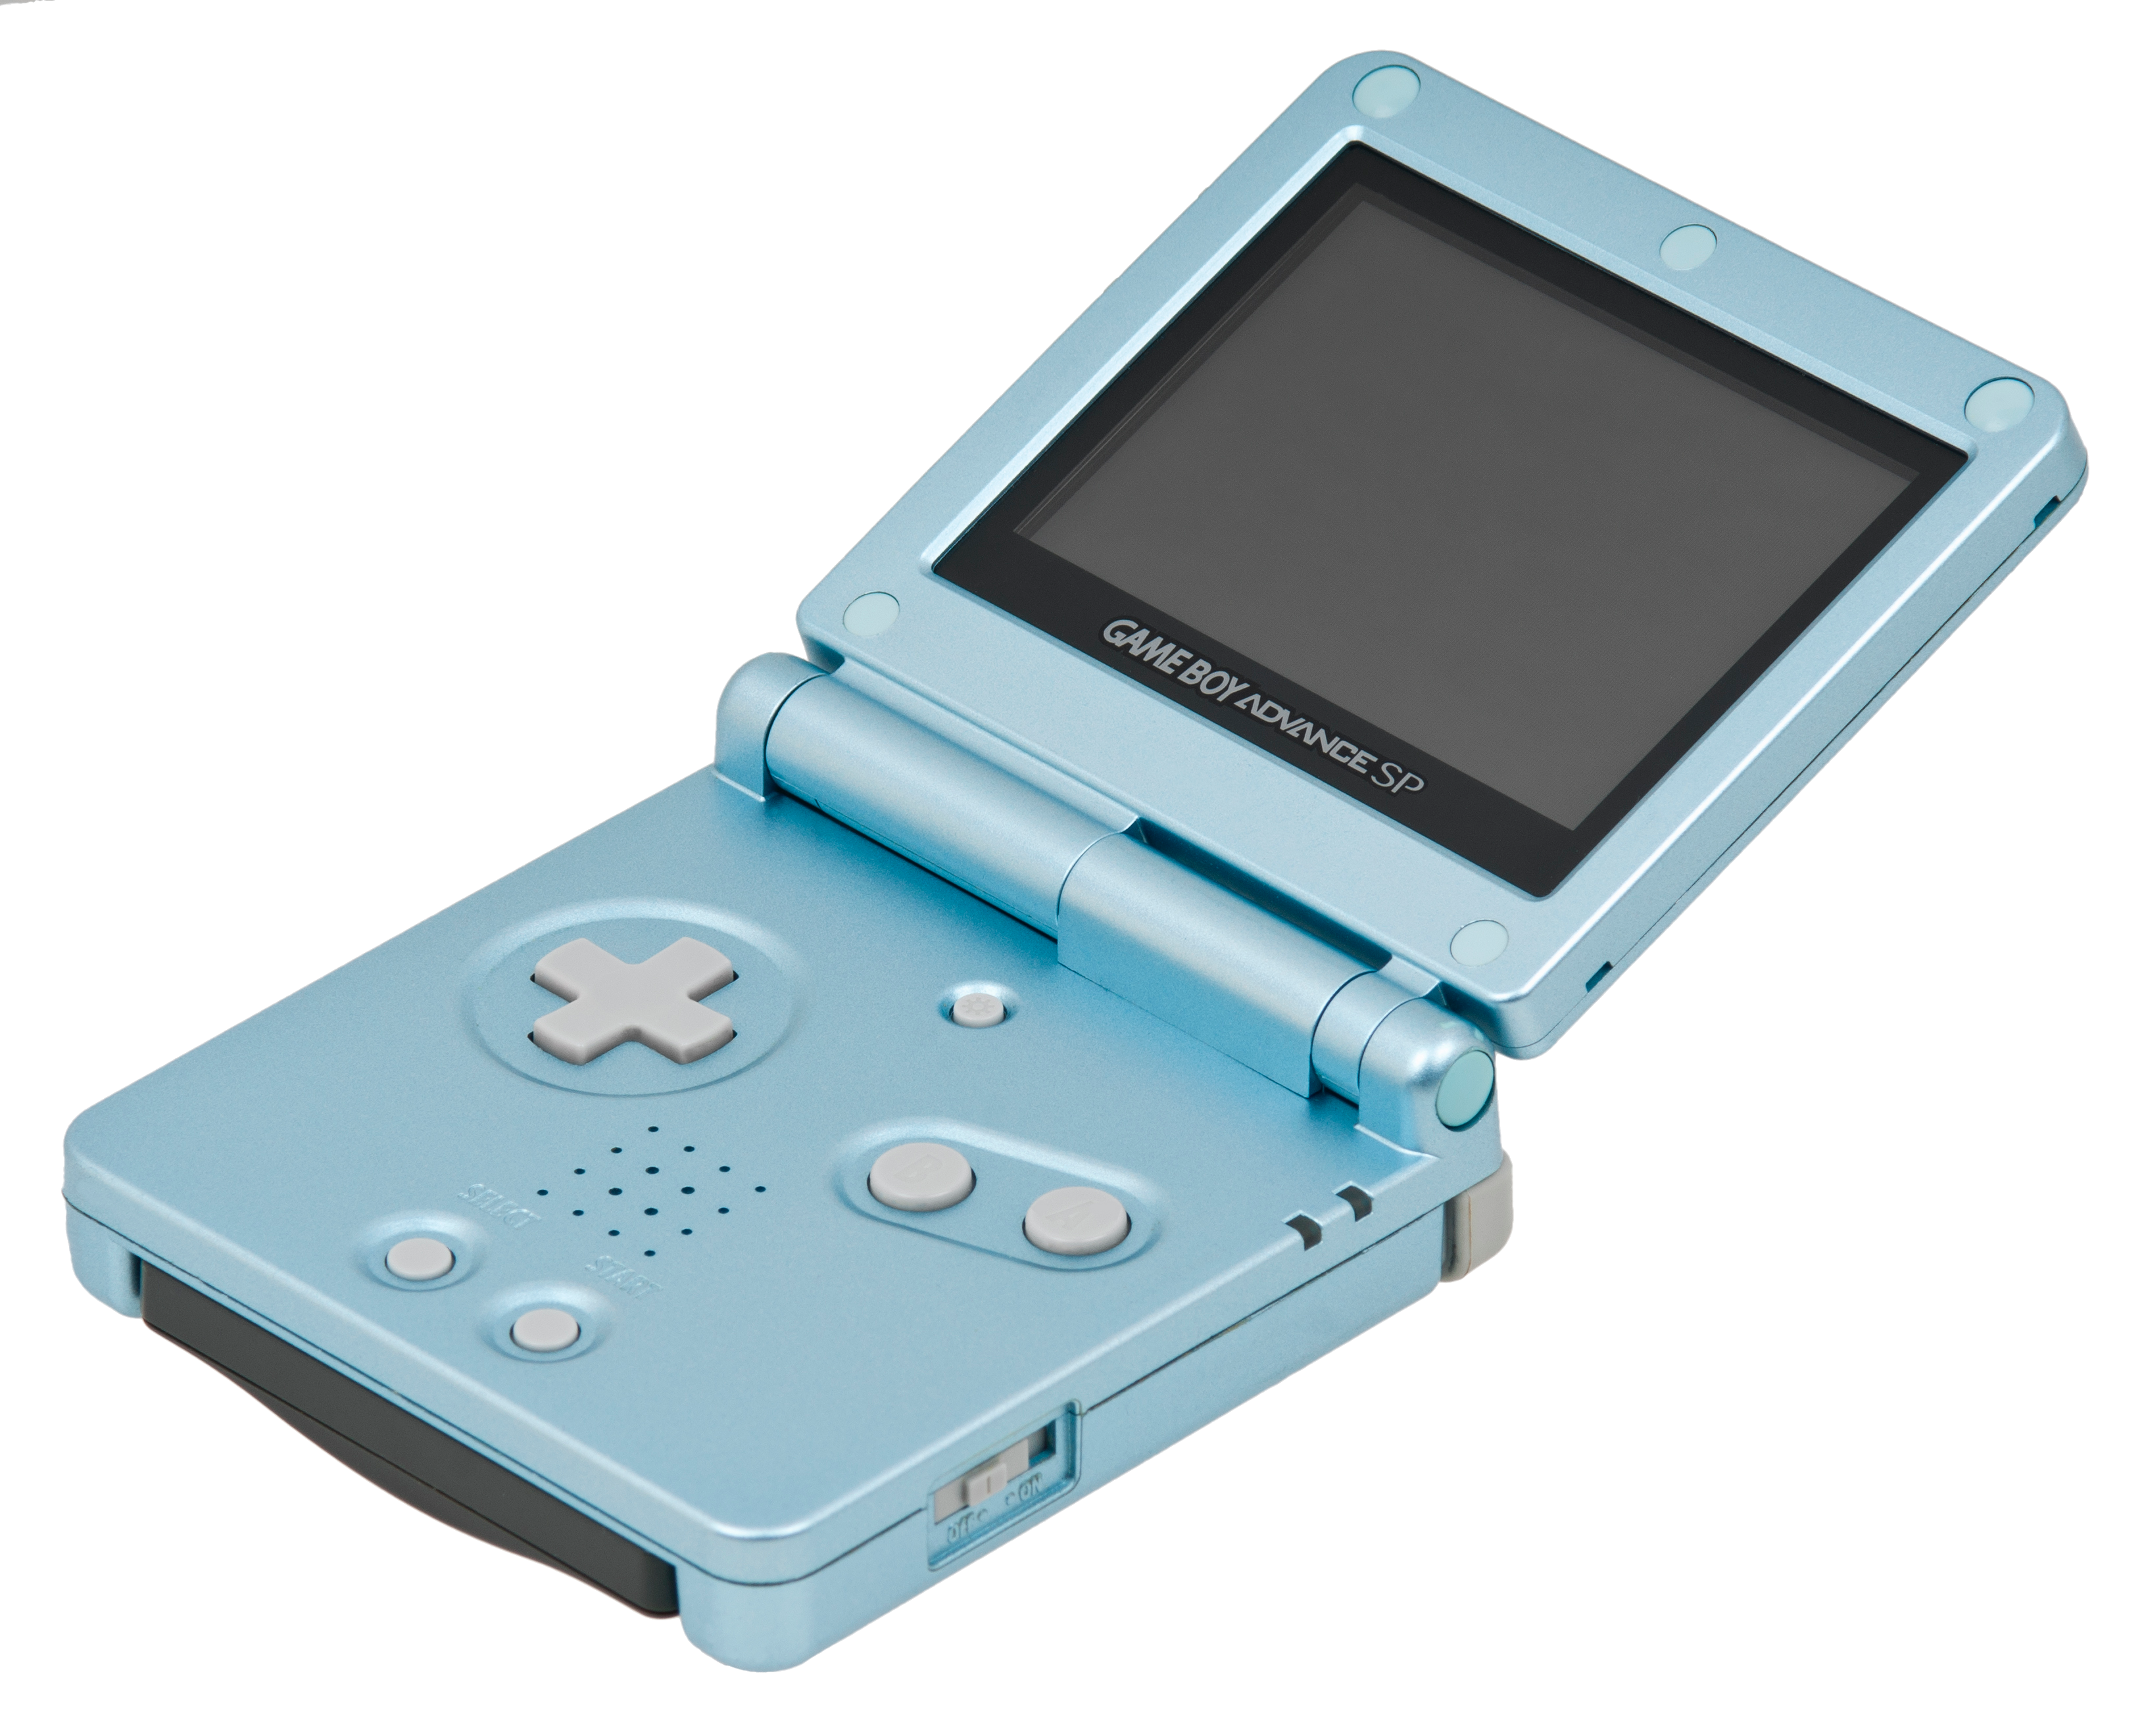 Can a Game Boy Advance use regular Game Boy games? - Quora